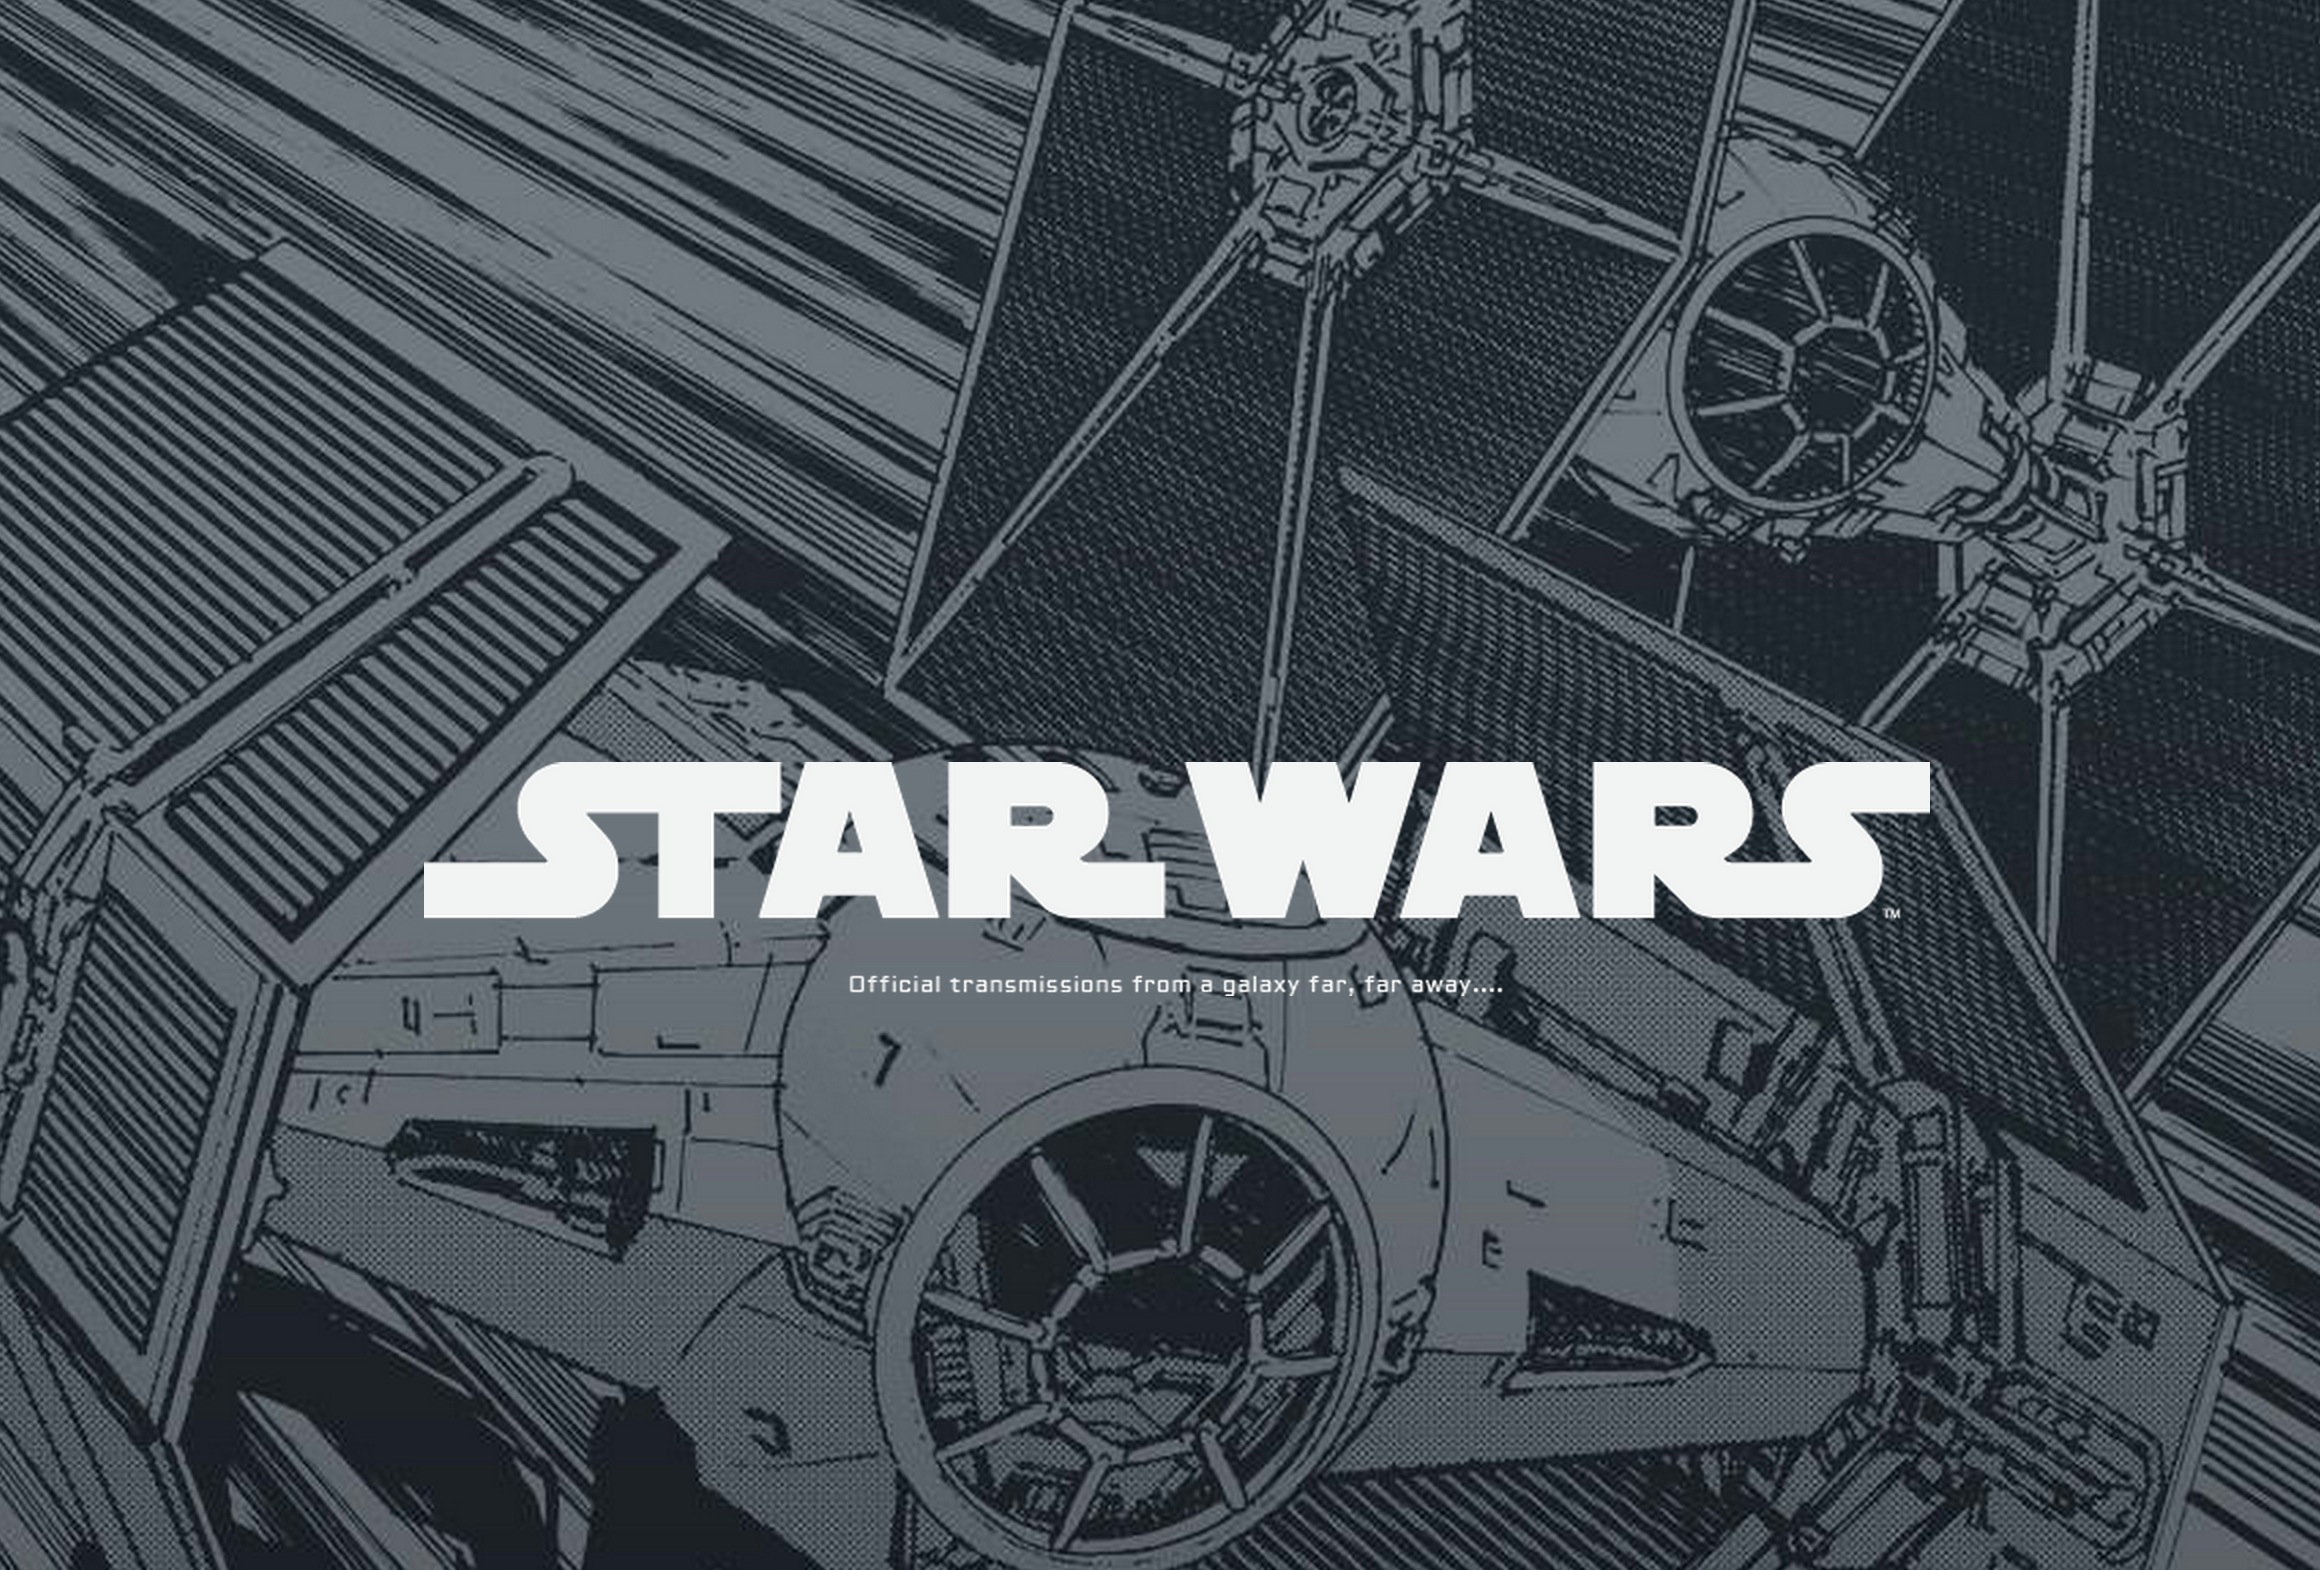 Star Wars Continues Marketing Push With Tumblr Comics Art And Gifs